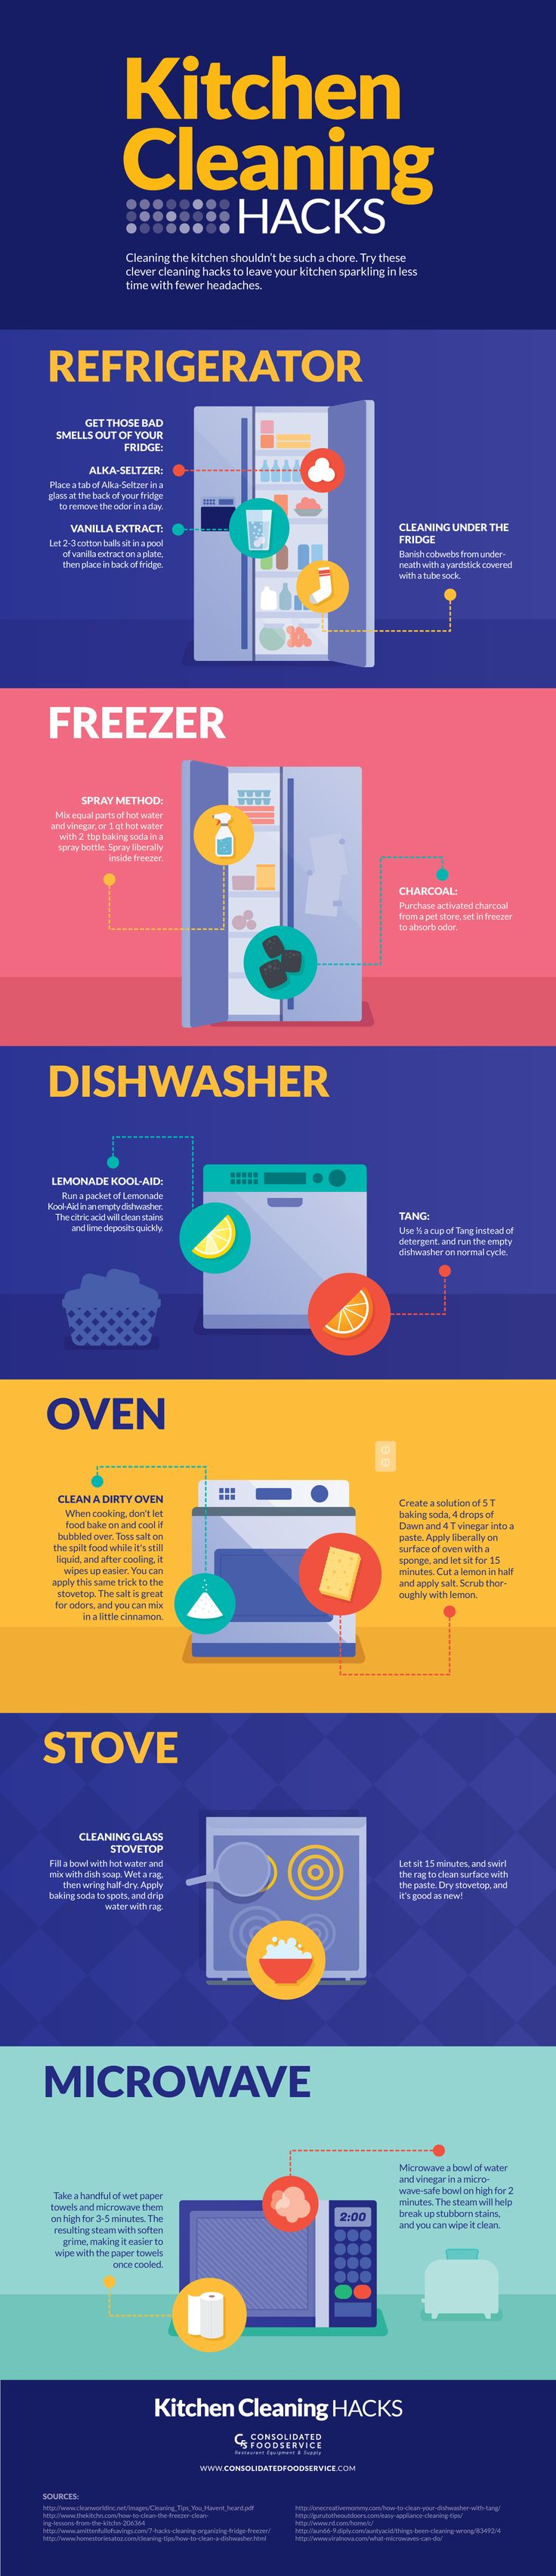 Cleaning all the appliances in your kitchen might not be your definition of fun, but a sparkling kitchen is nice to have. You can refresh your kitchen with common ingredients you probably already have in your pantry.